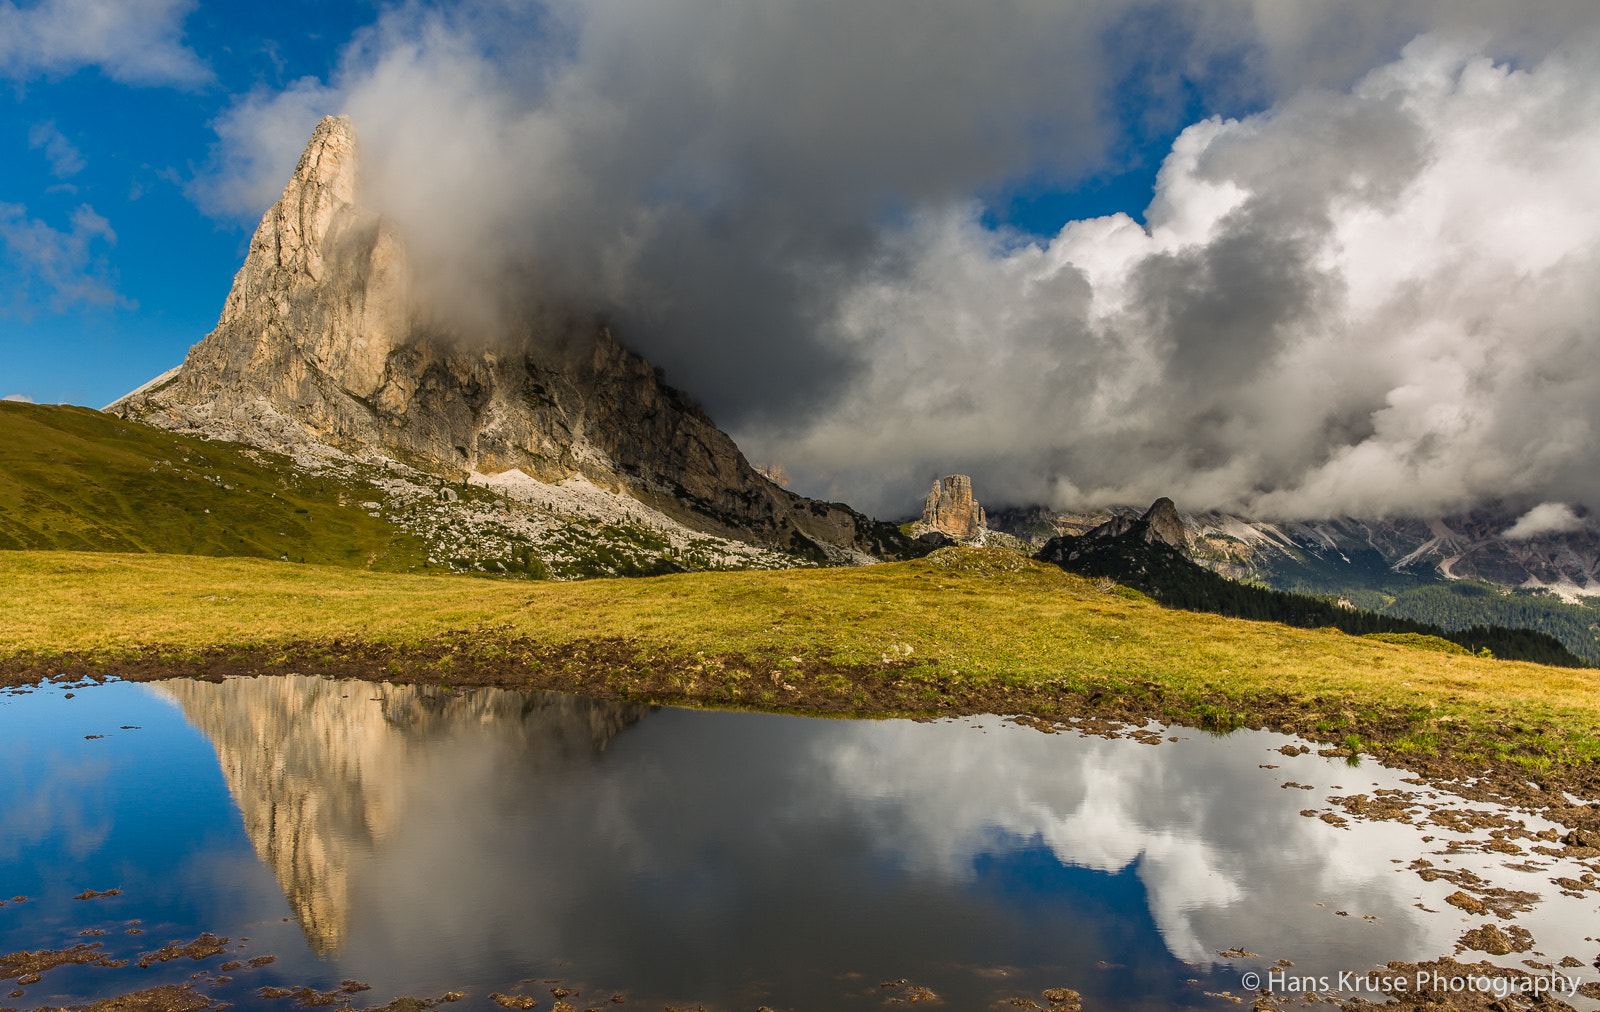 Photograph Reflection at Passo Giau by Hans Kruse on 500px